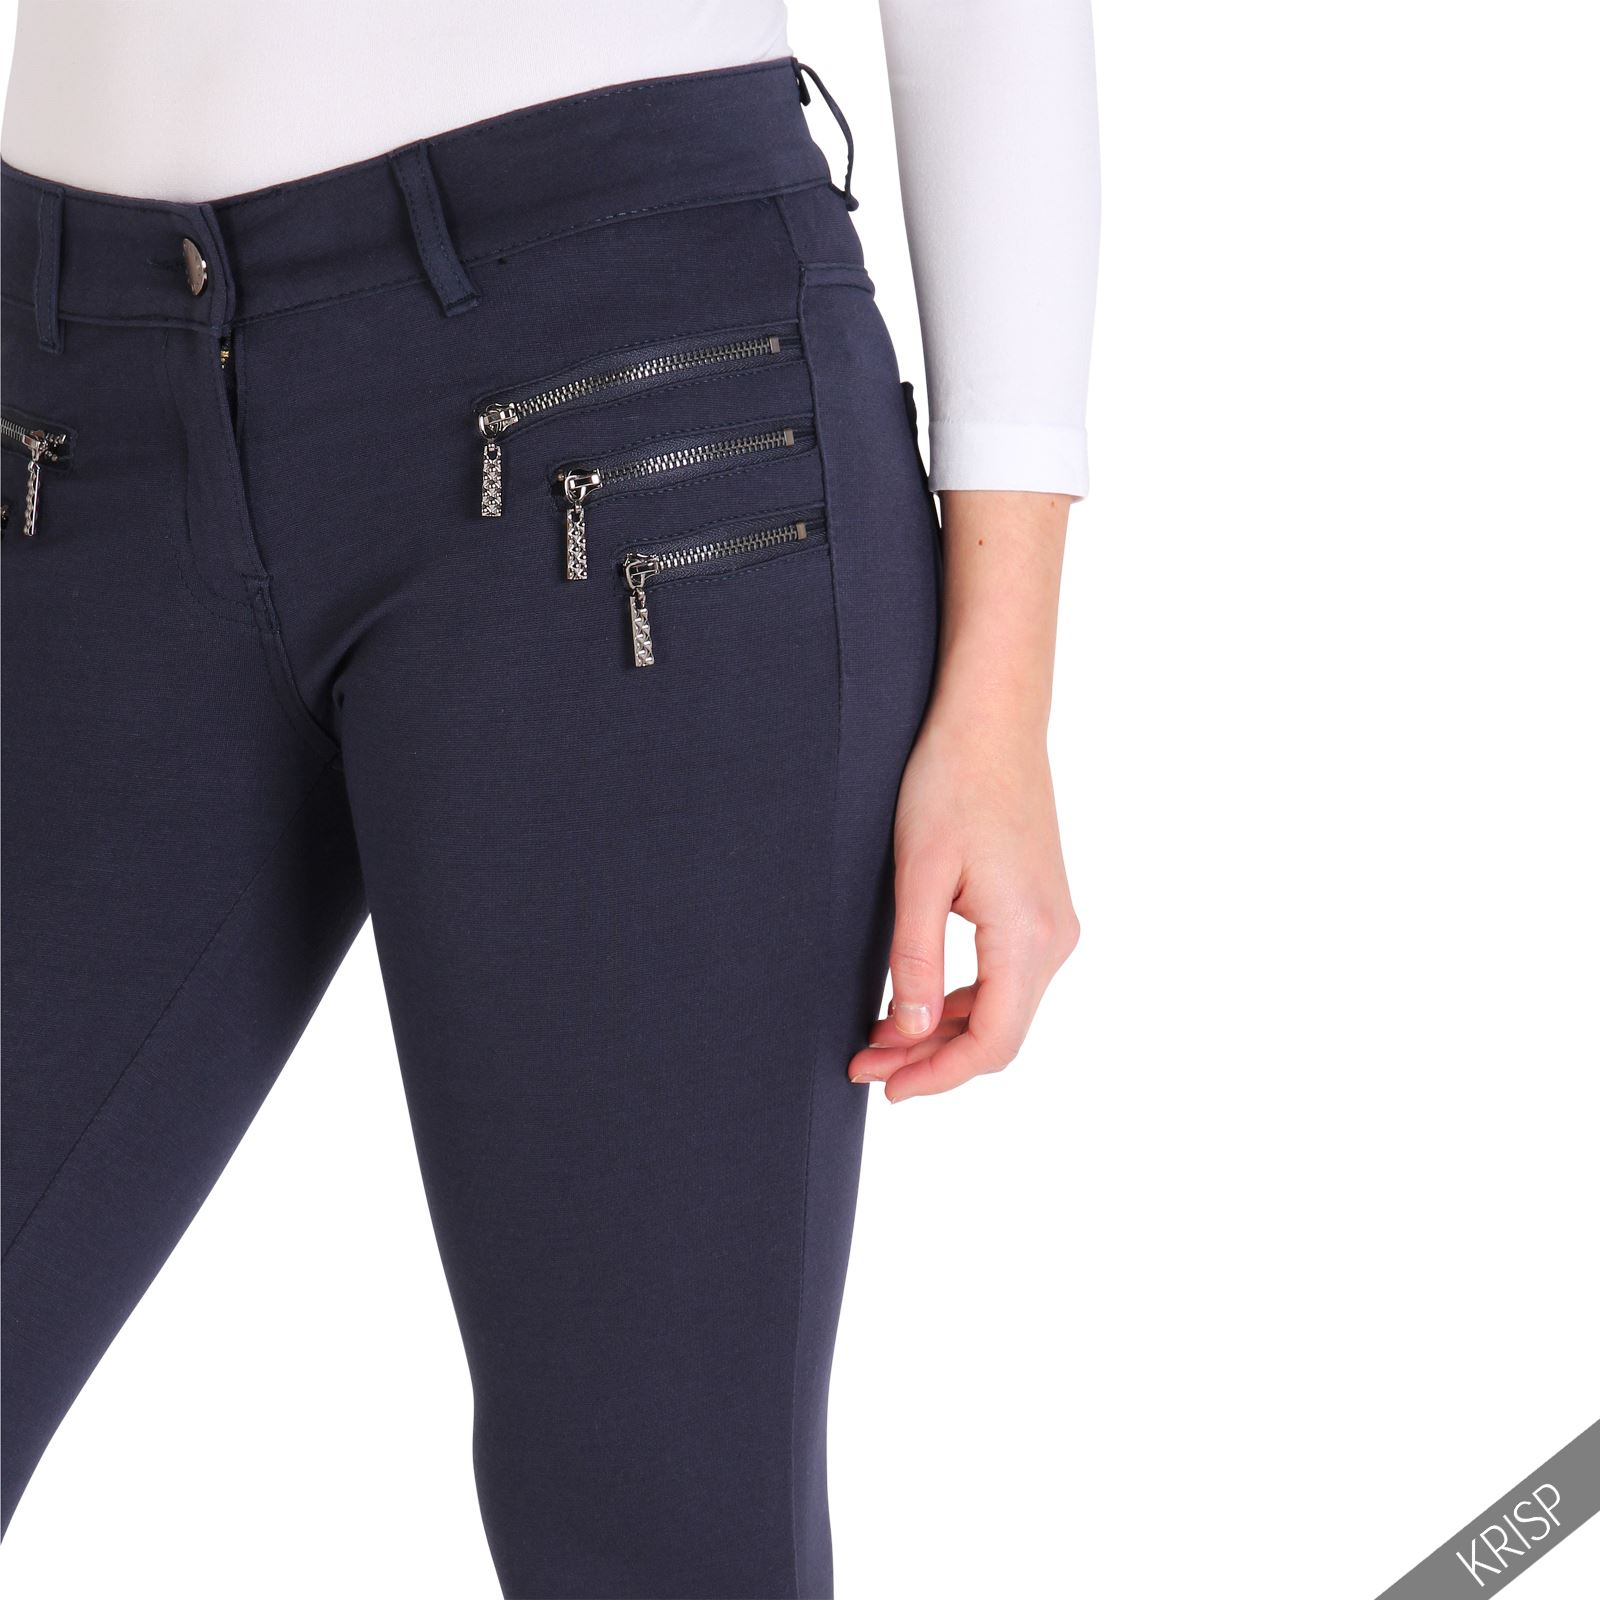 womens stretch skinny fit jeans leggings jeggings smart casual trousers pants ebay. Black Bedroom Furniture Sets. Home Design Ideas